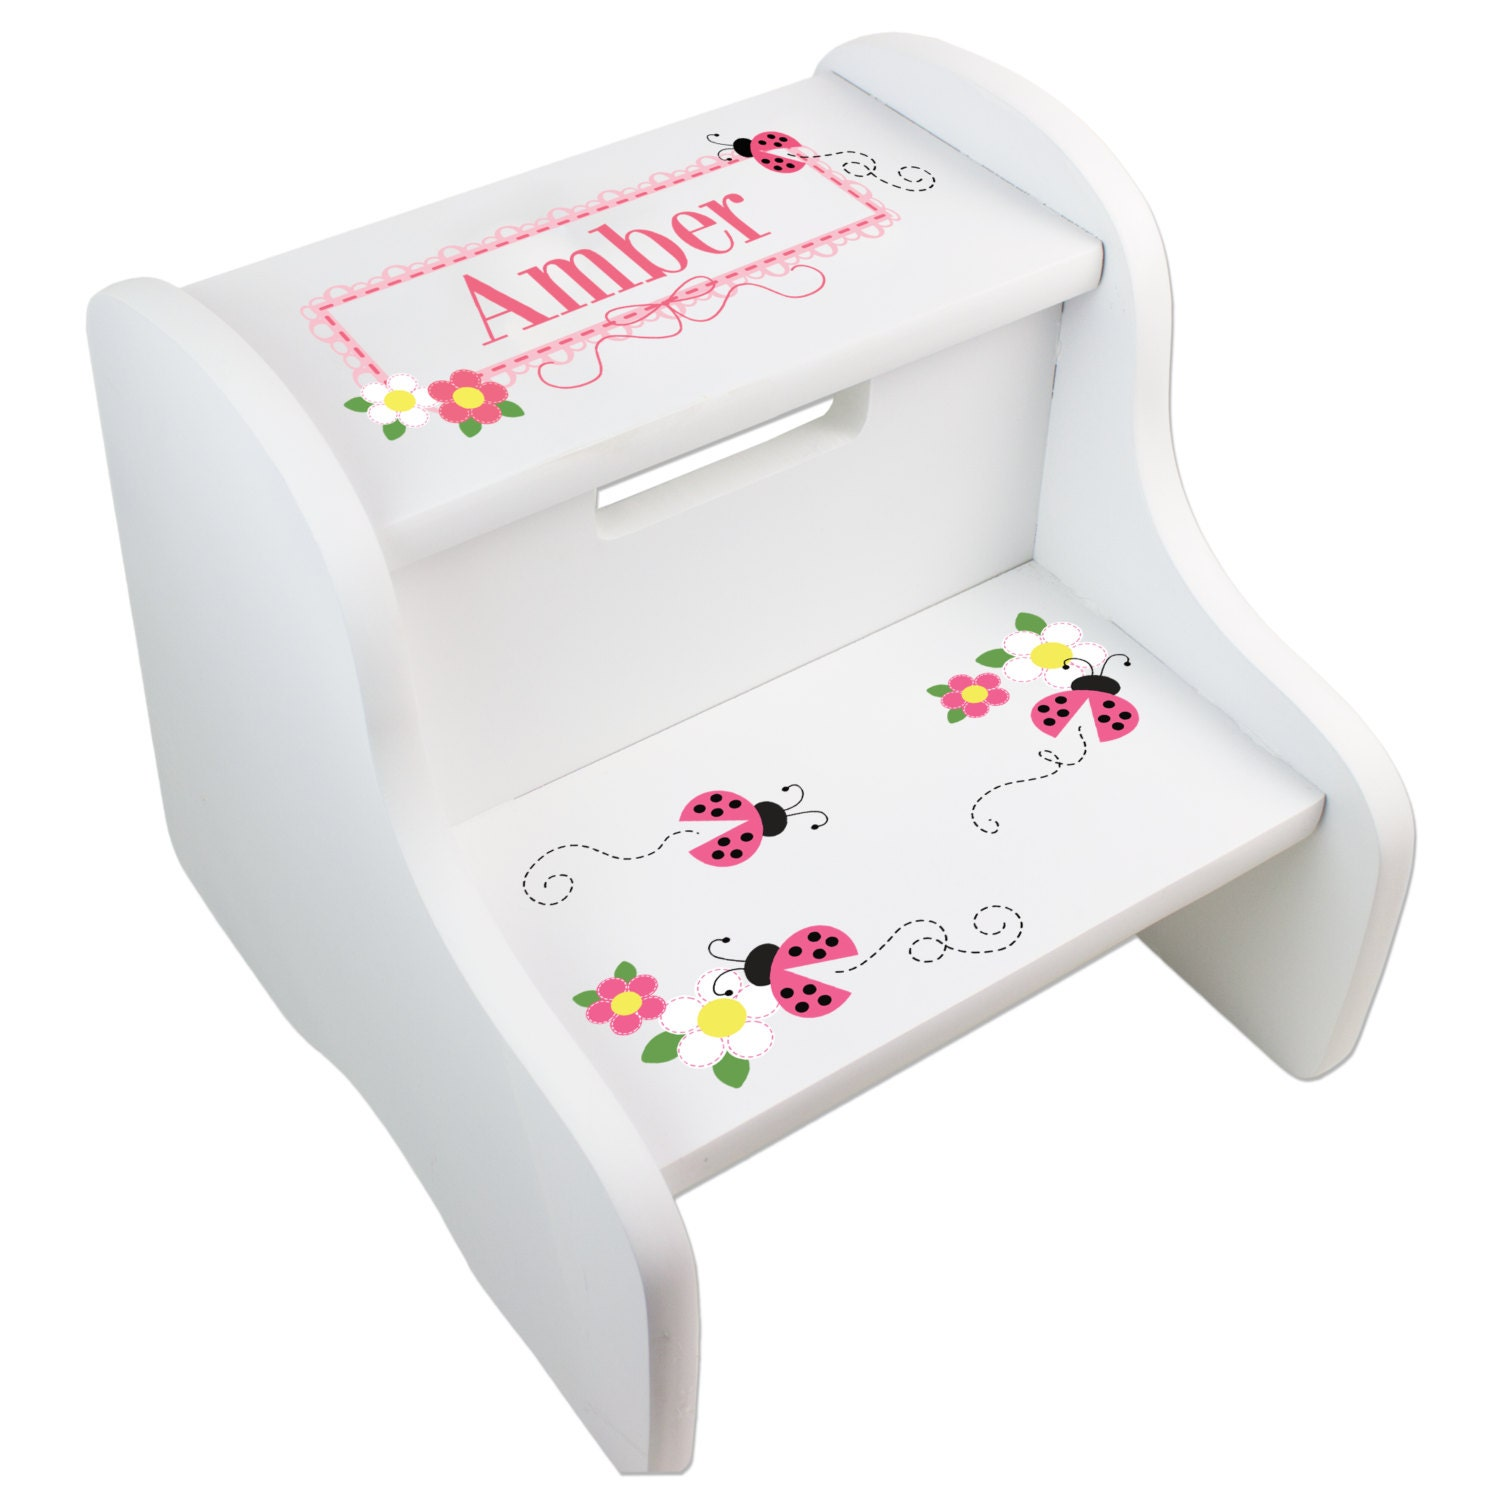 Personalized Children s Ladybug Step Stool for Lady by